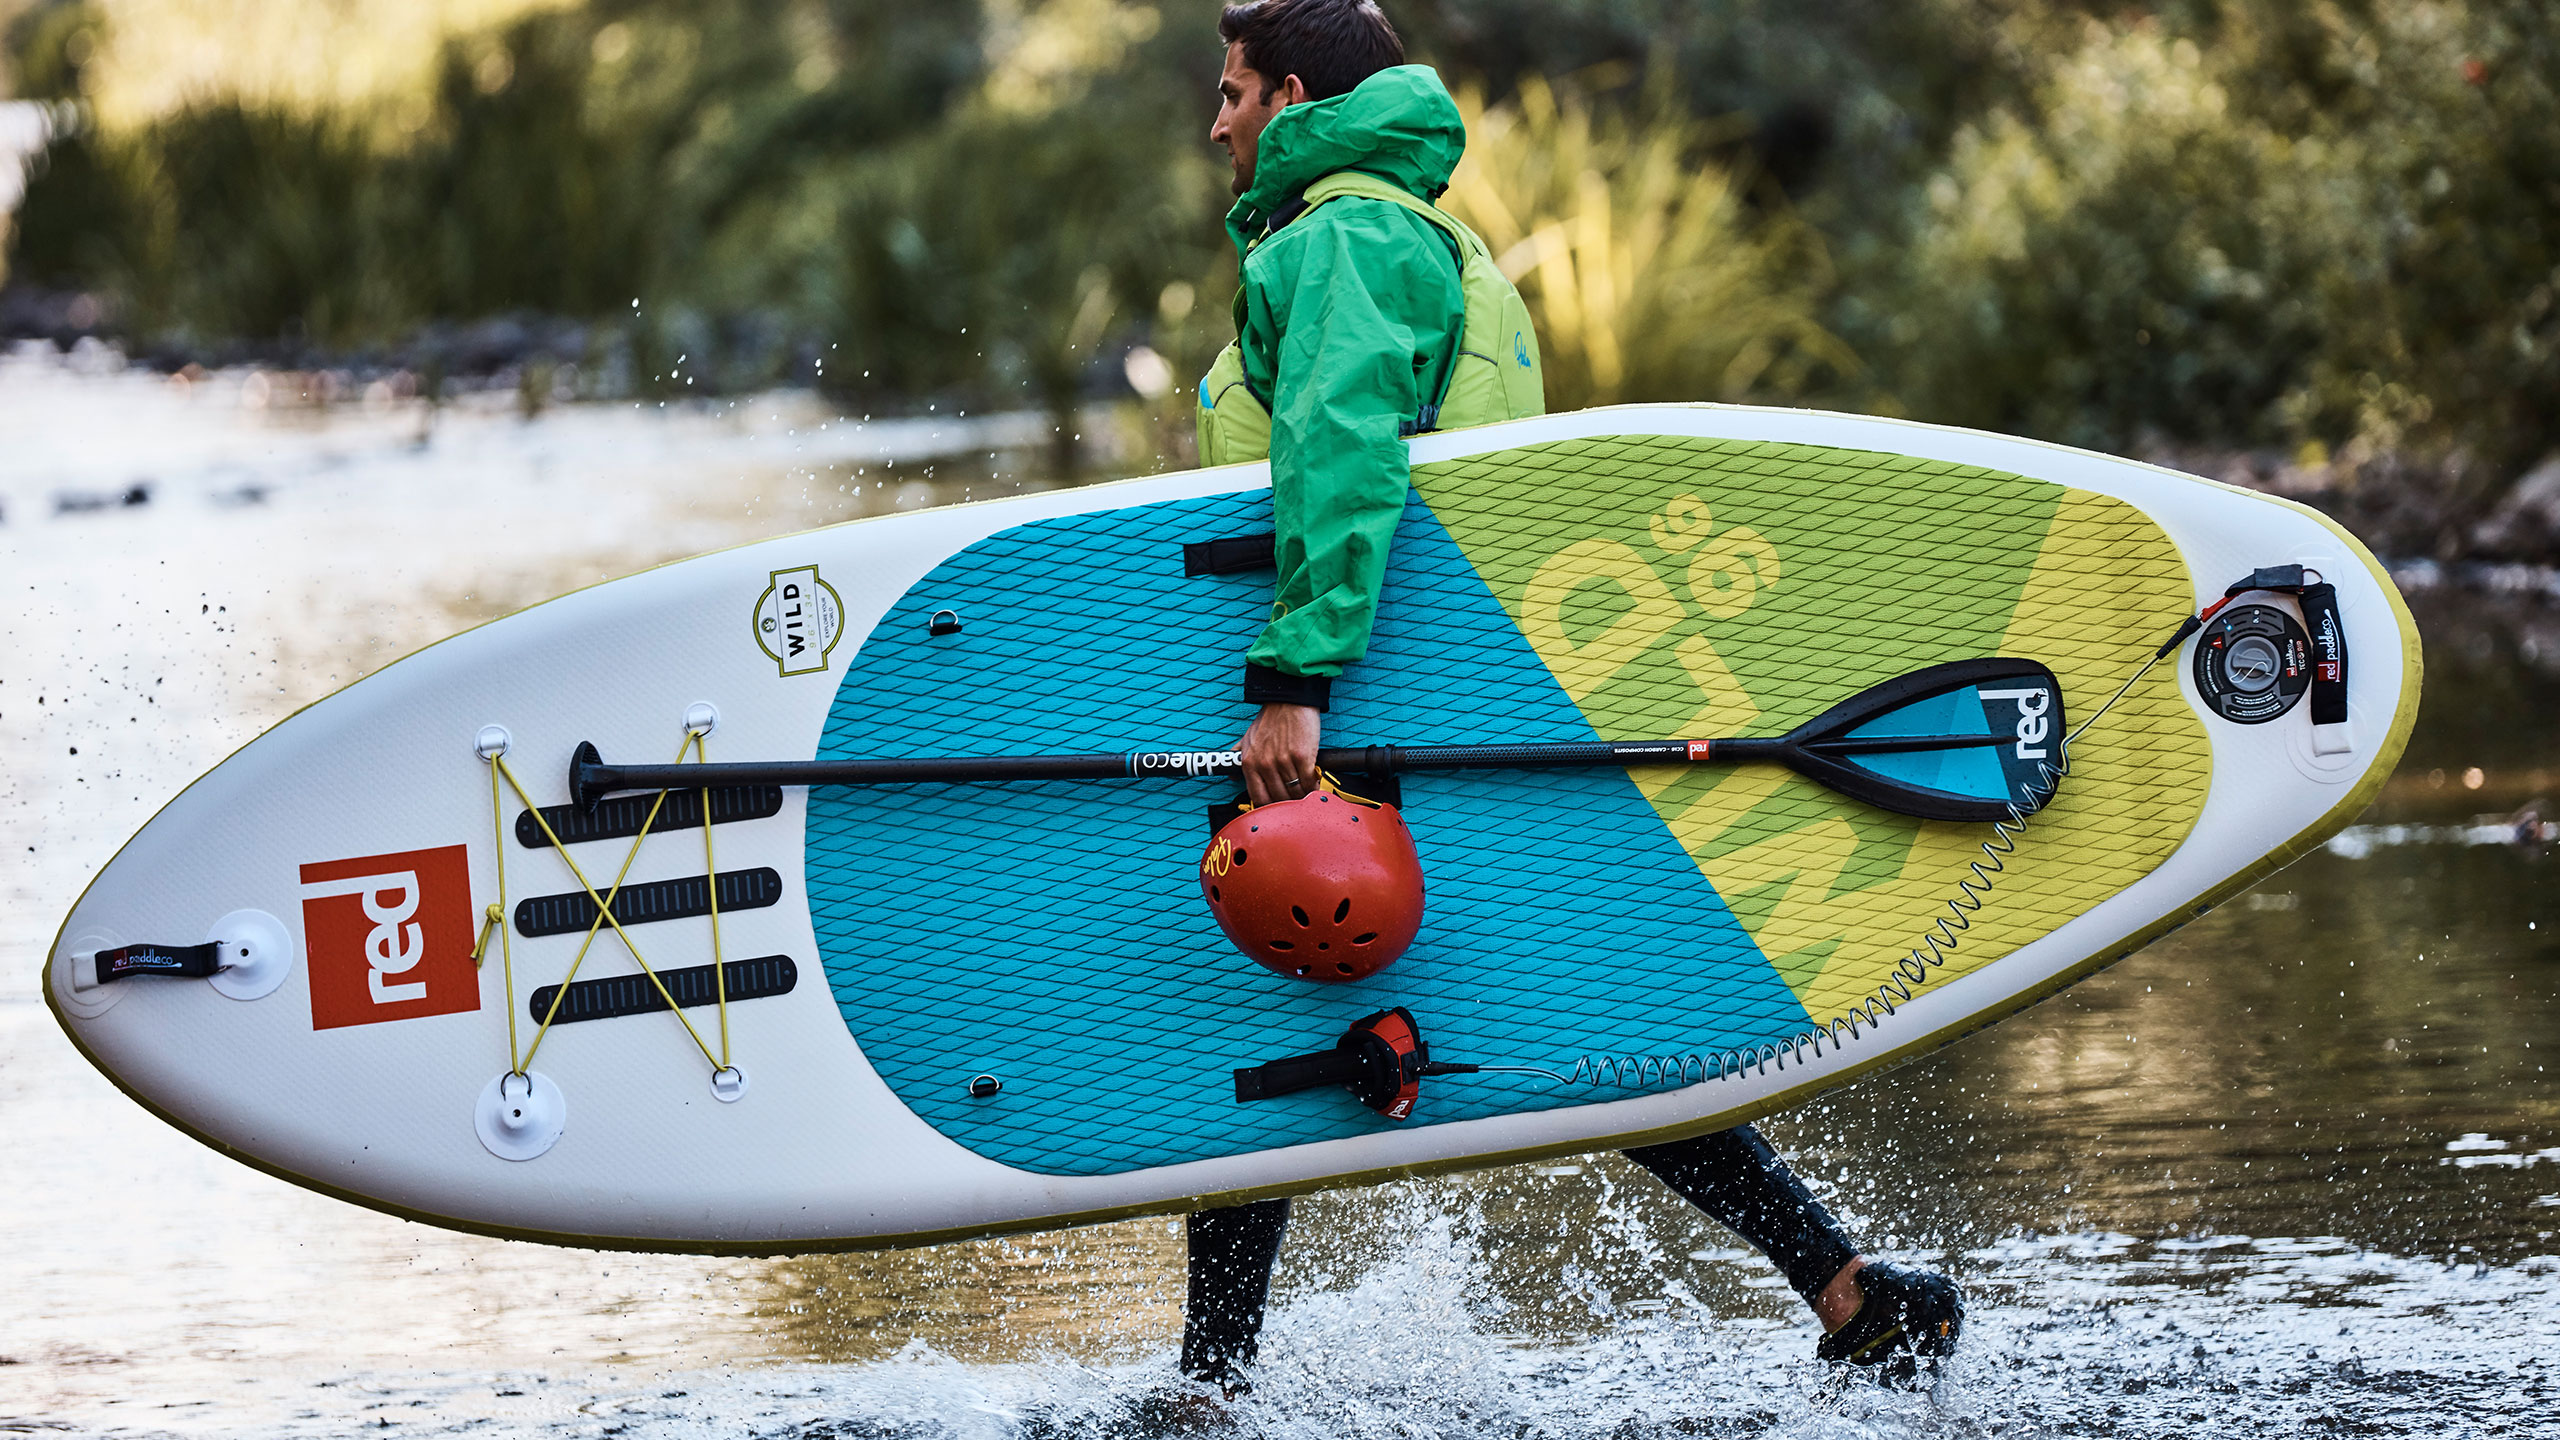 man walks through river carrying his Wild SUP, paddle and helmet